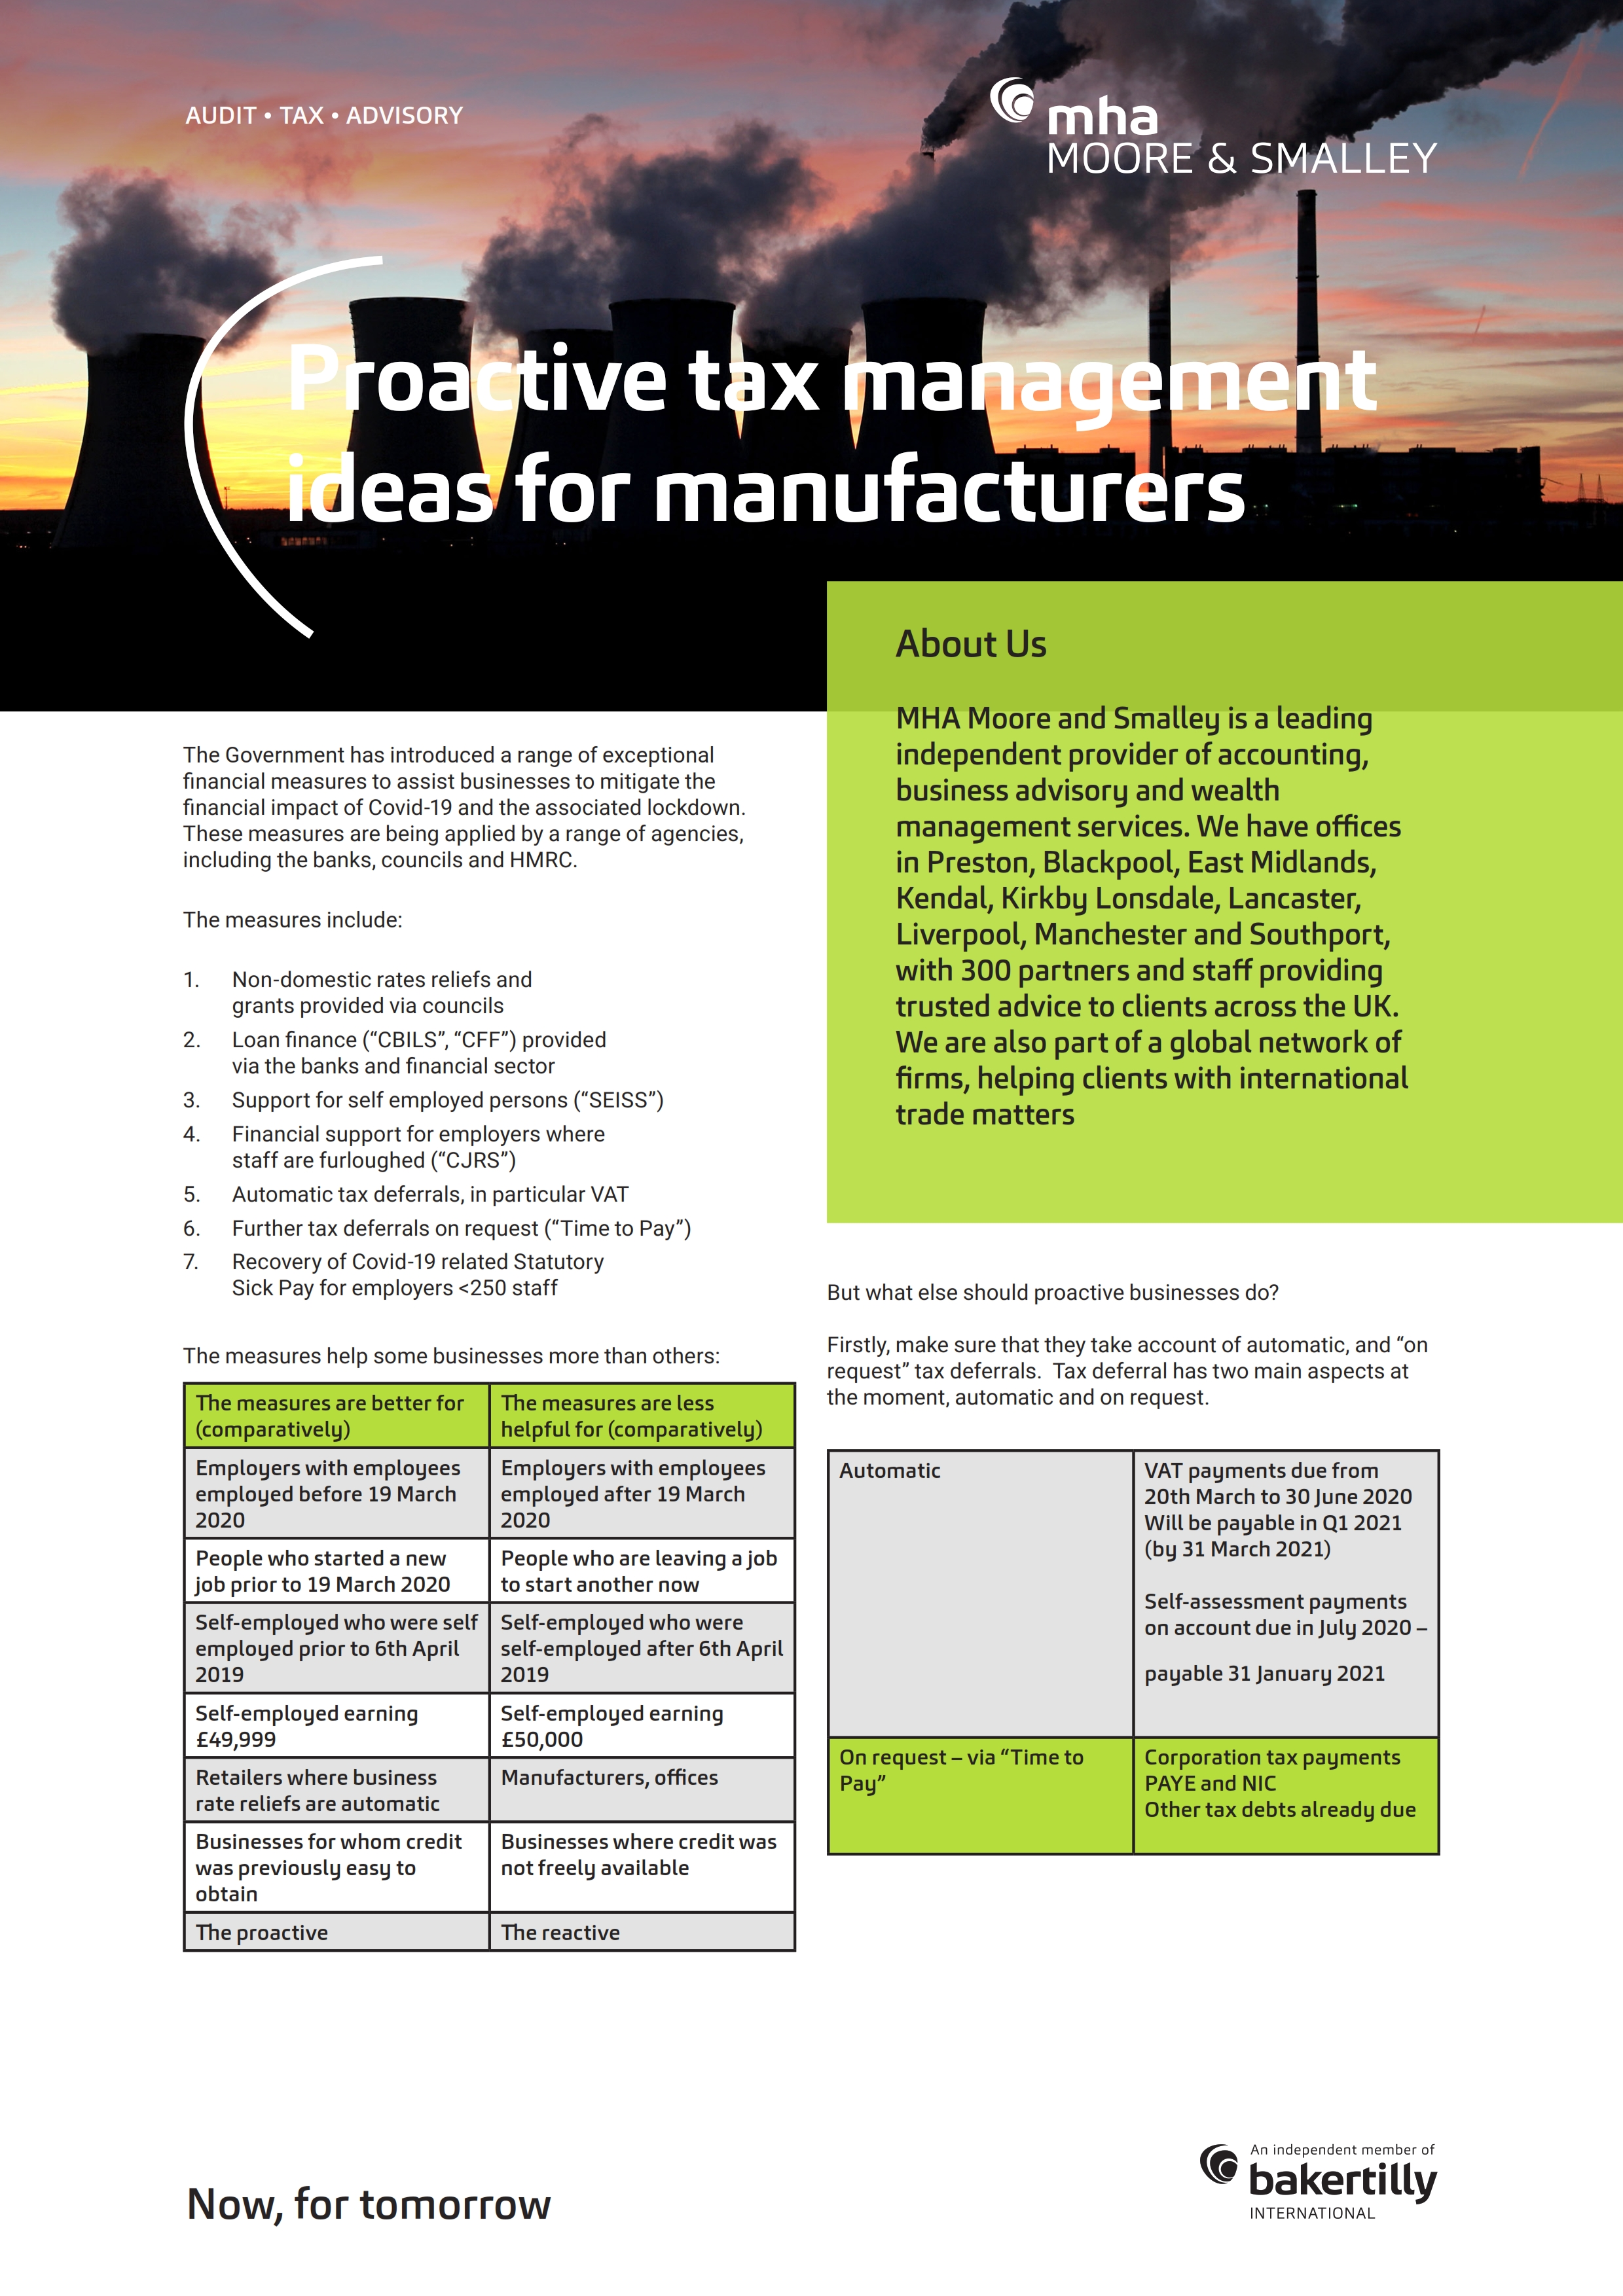 Proactive tax management ideas for manufacturers